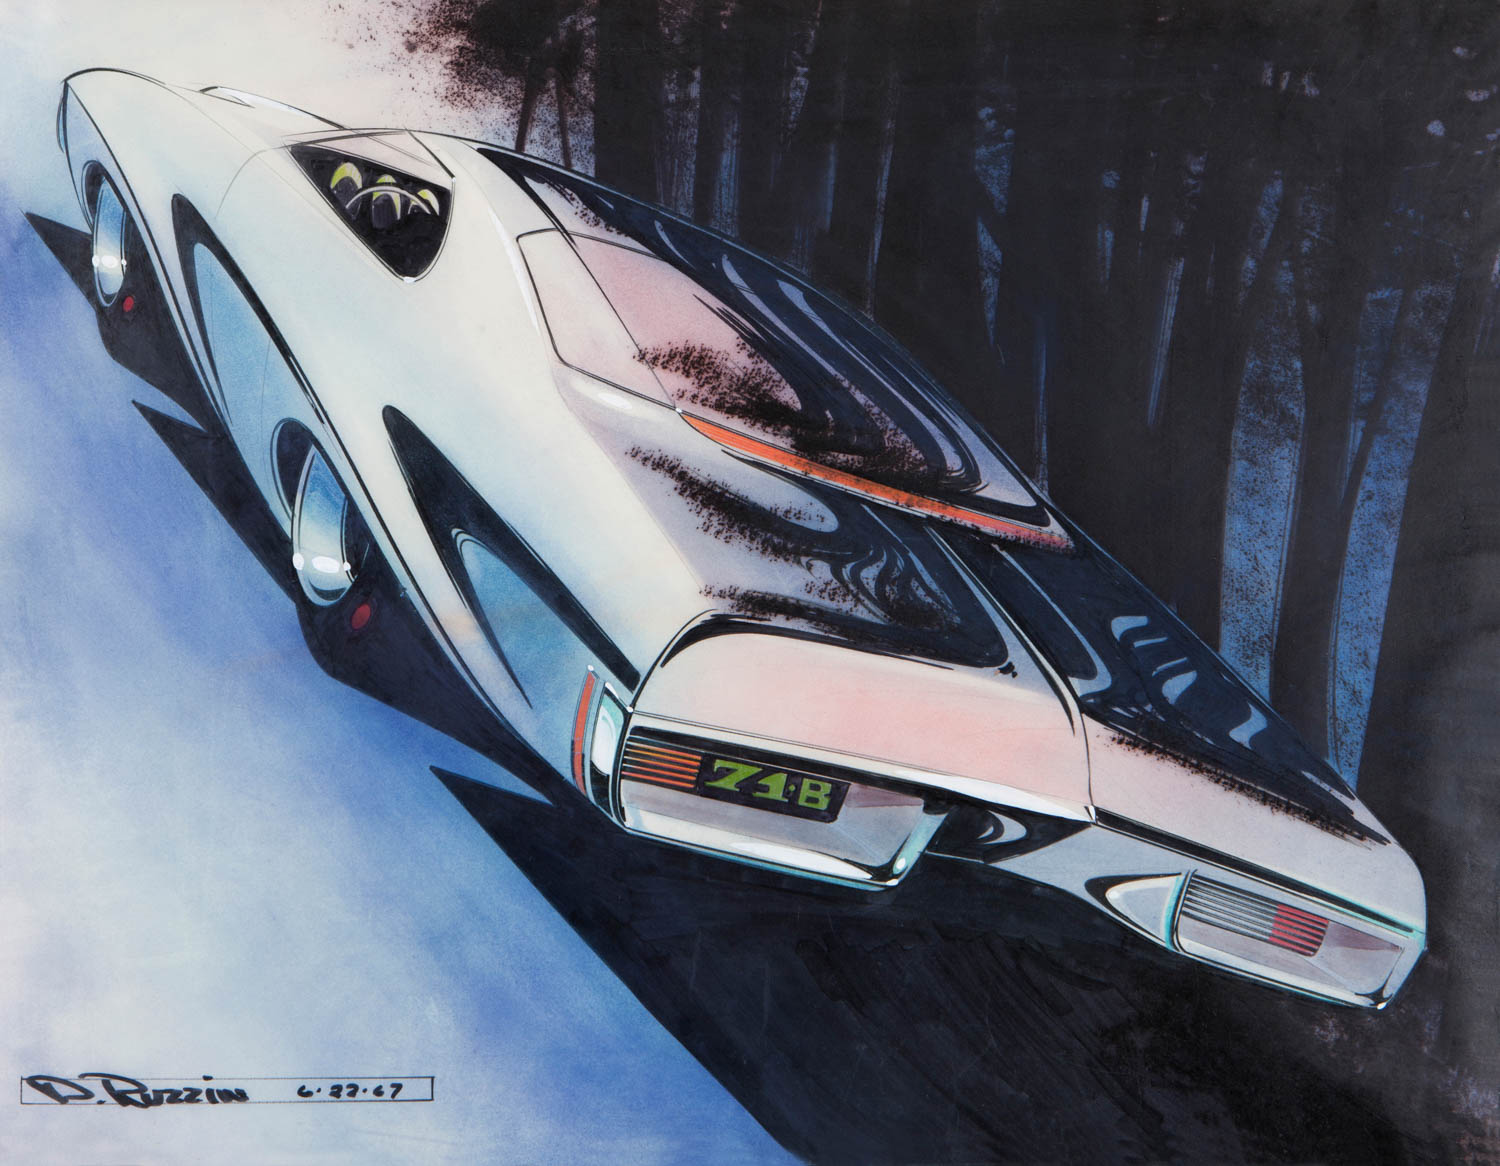 This Buick coupe from June 1968 is also from the Preliminary Design Studio. The two break lines in the rear glass tie in with the high-level brake light. We developed a wonderful 1/3-scale clay model from this sketch.